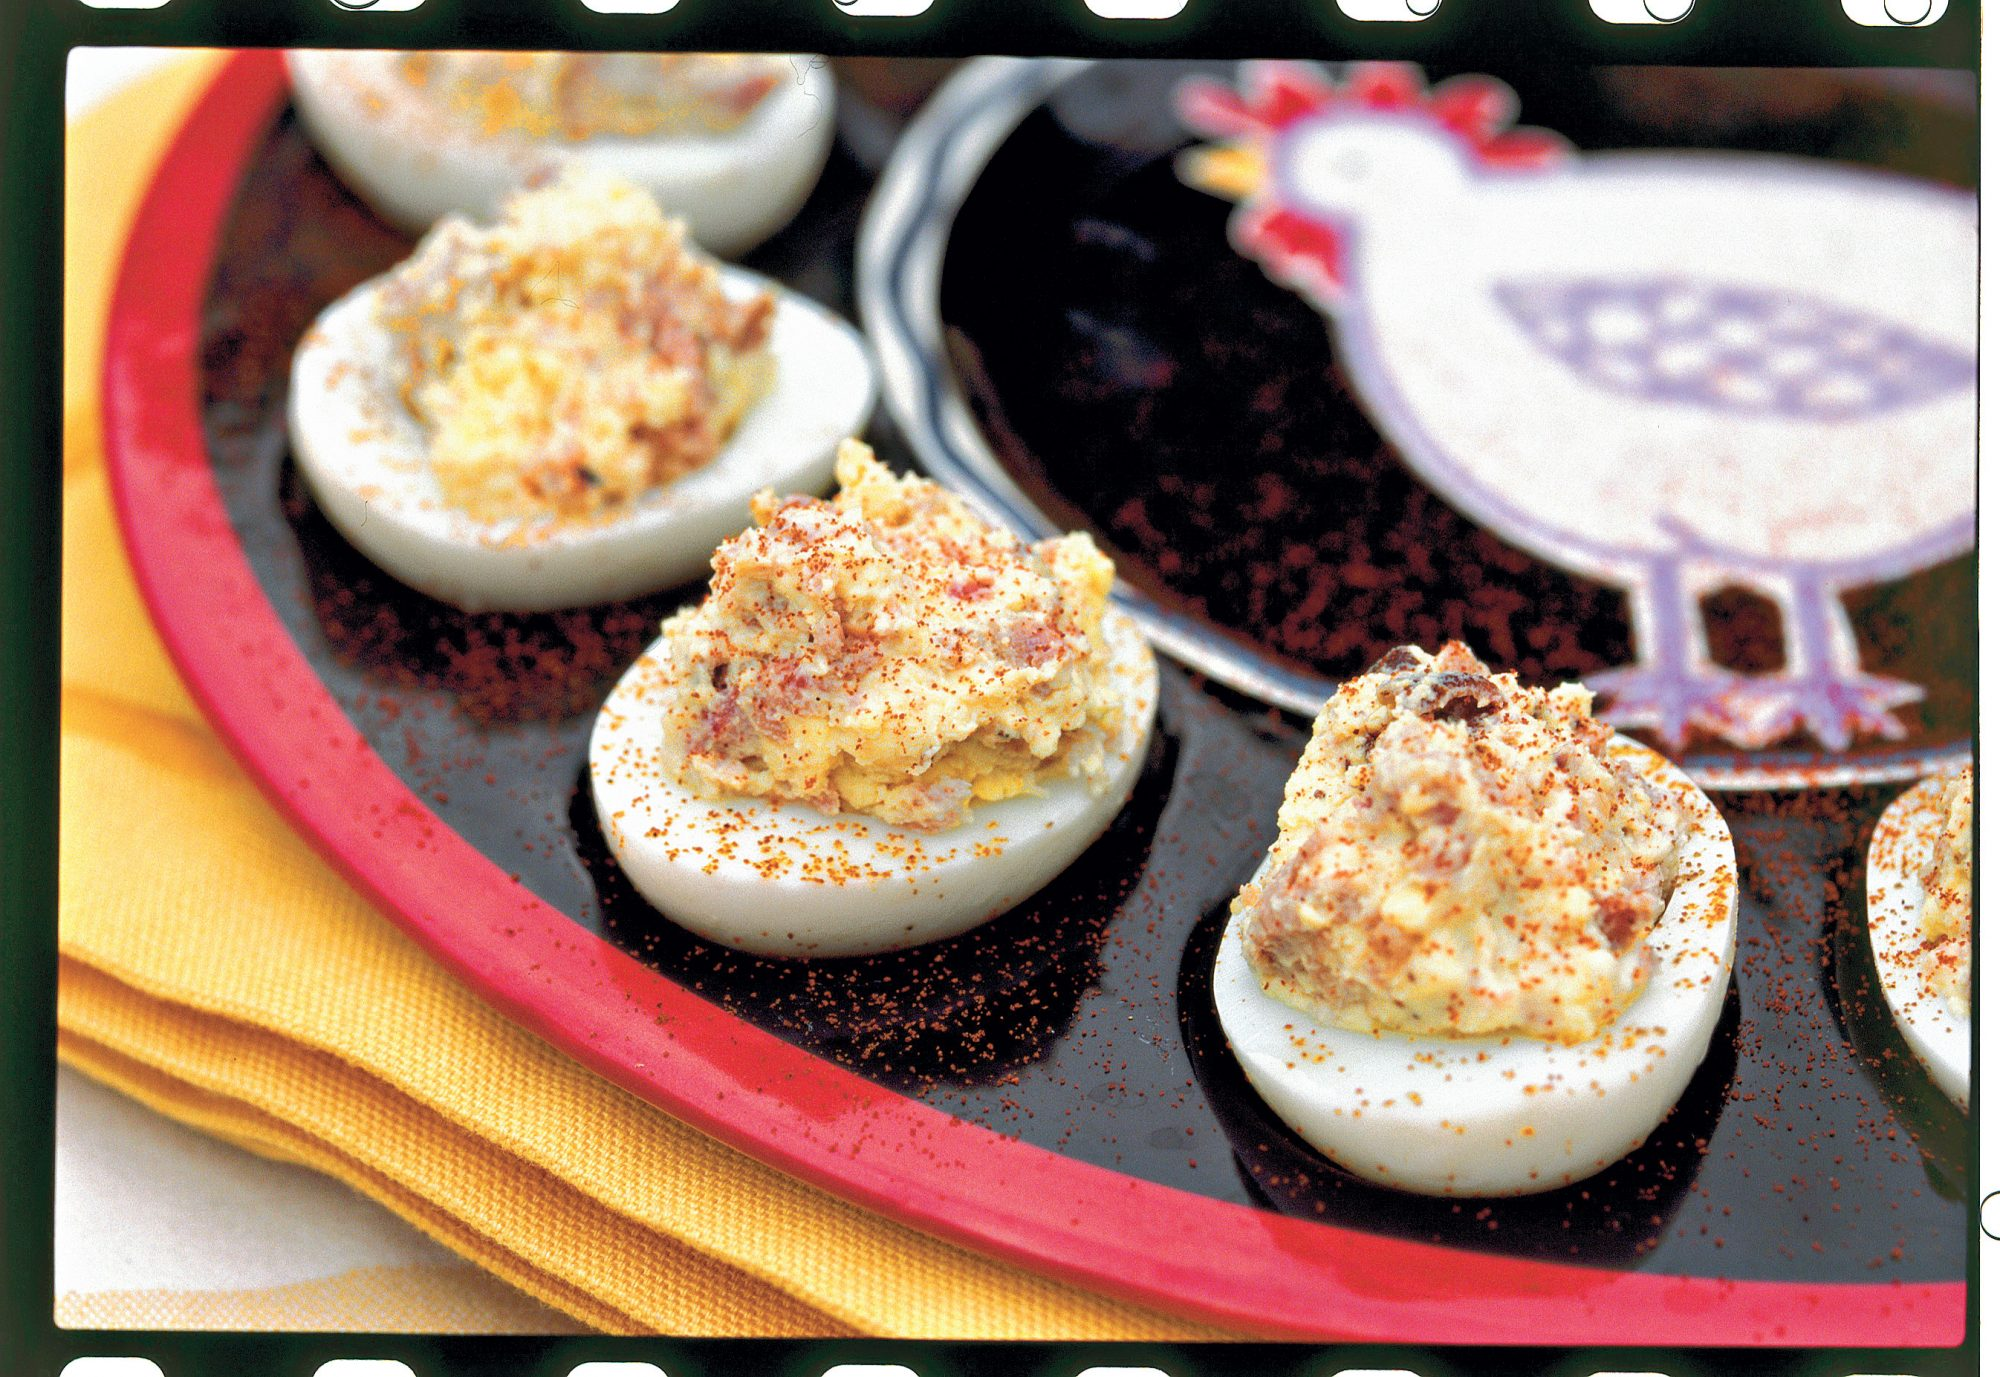 Deviled egg recipes southern living barbecue deviled eggs recipe forumfinder Choice Image